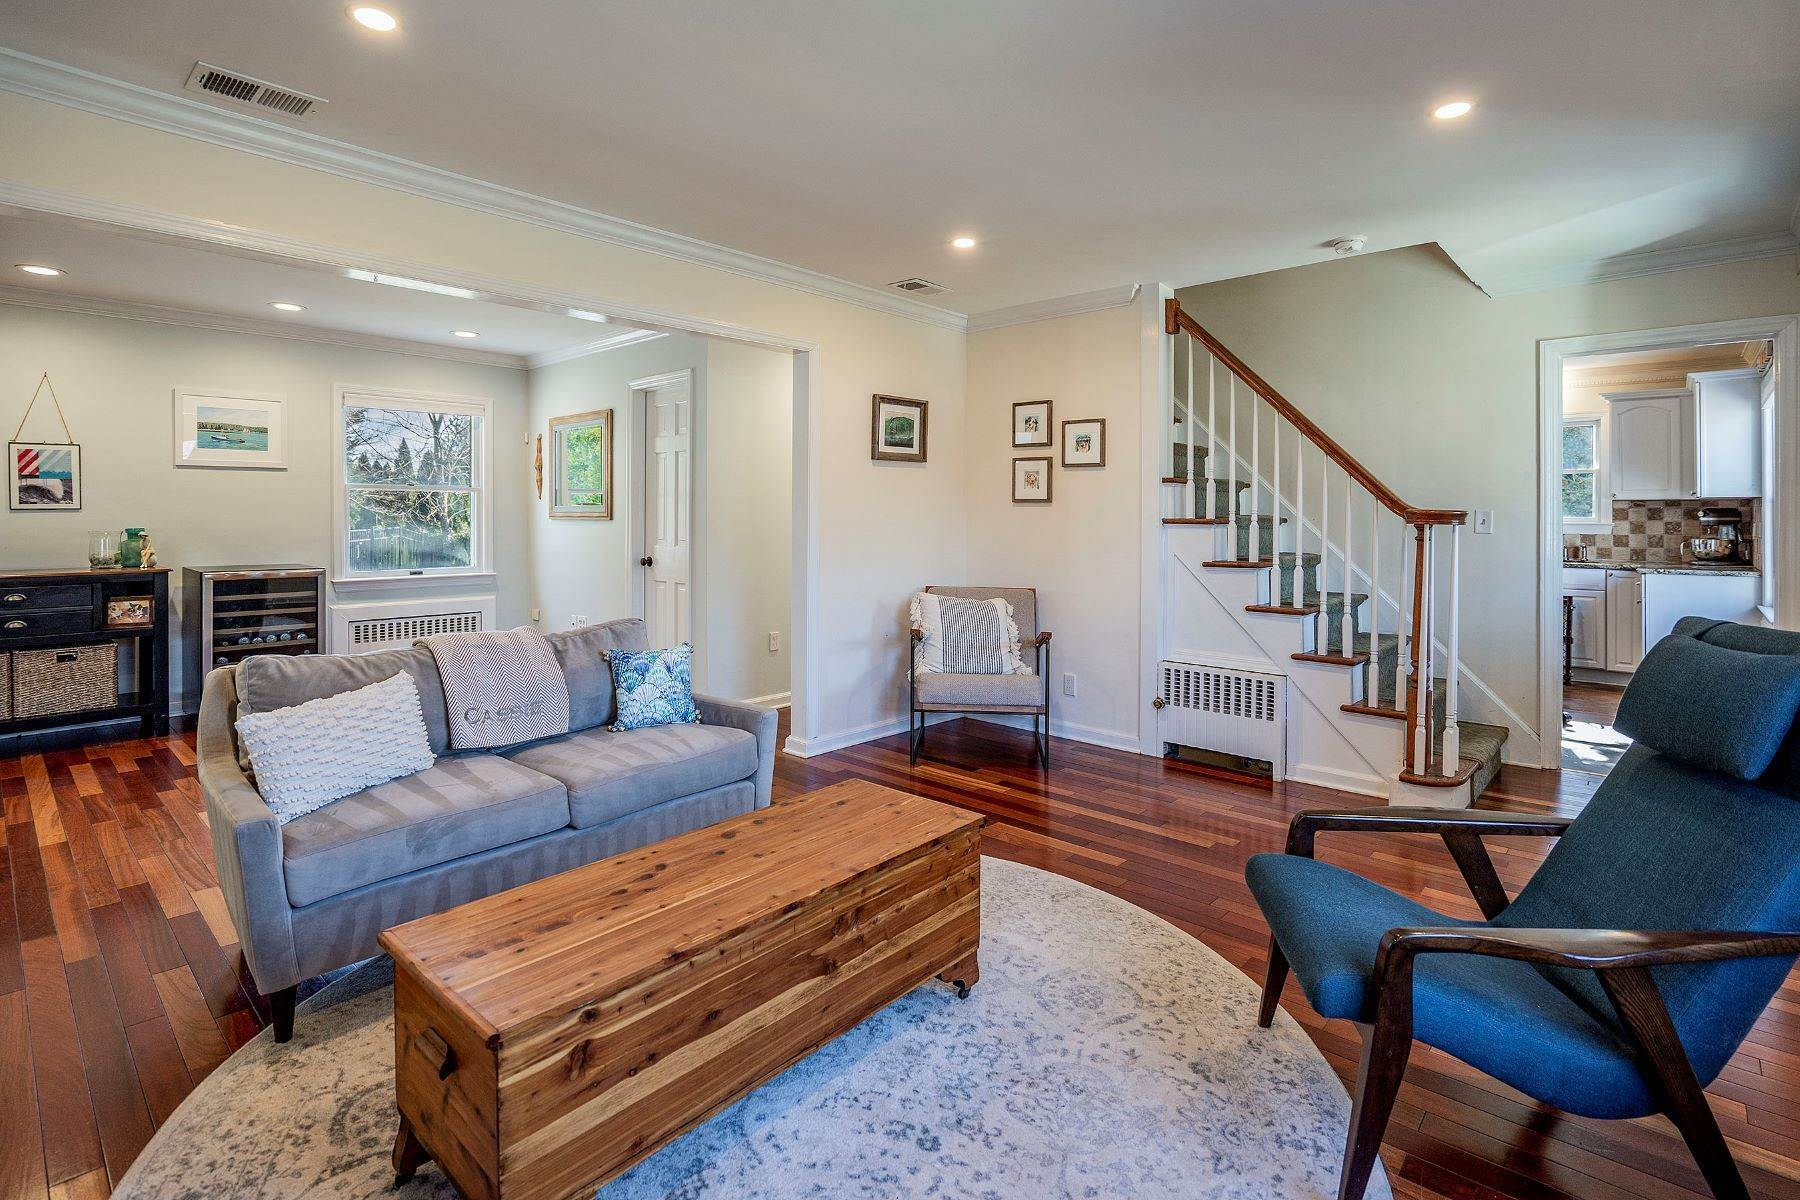 8. Single Family Homes for Sale at Sunnycrest Neighborhood 16 Carlile Terrace Little Silver, New Jersey 07739 United States